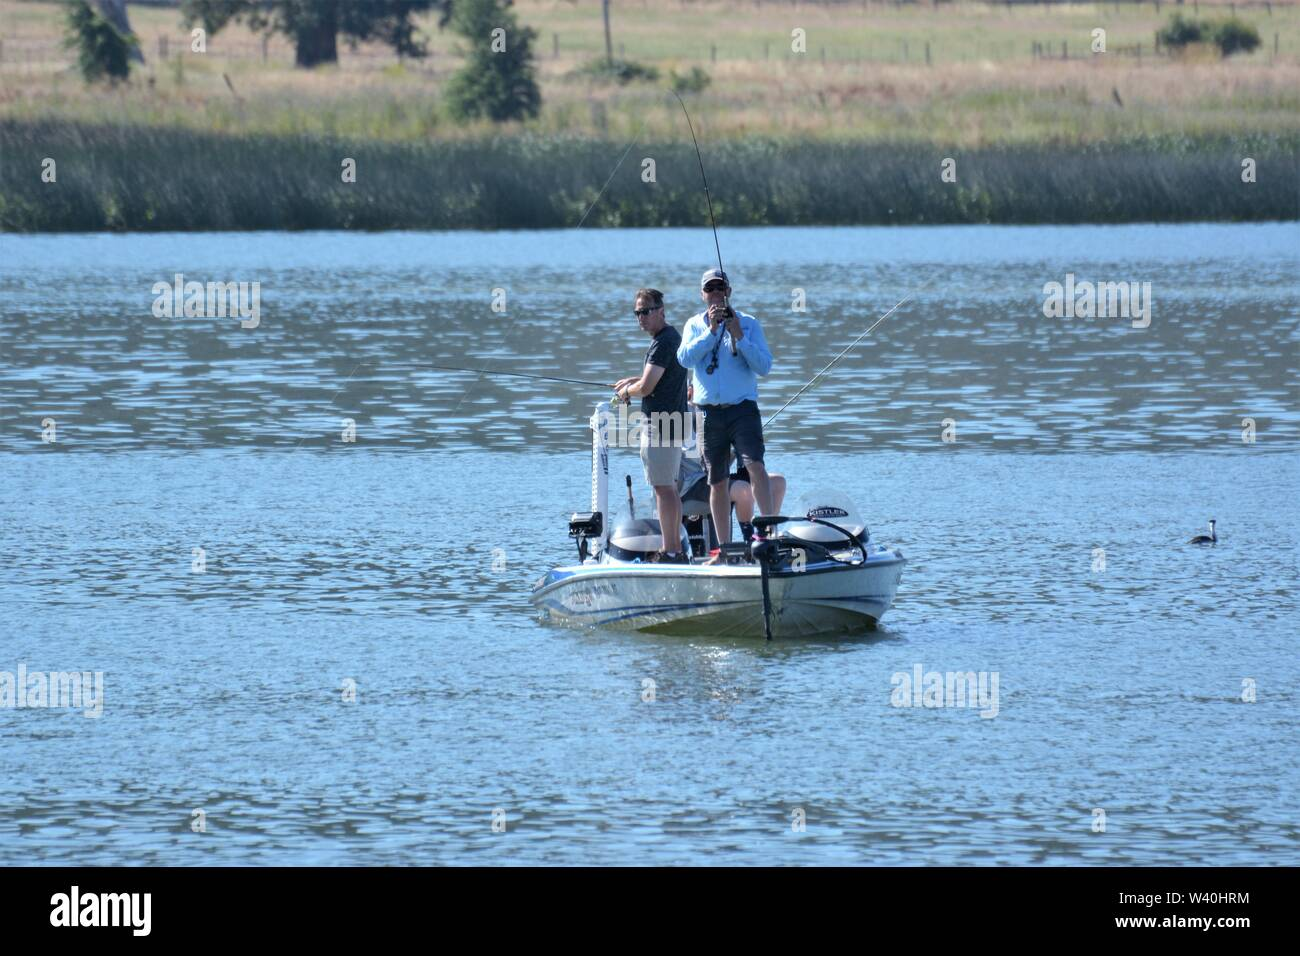 Men Fishing For Real Bass From Boats In Clear Lake Clearlake California Usa In Bass Boat On Warm Clear Day For Fun And Hobby America Stock Photo Alamy